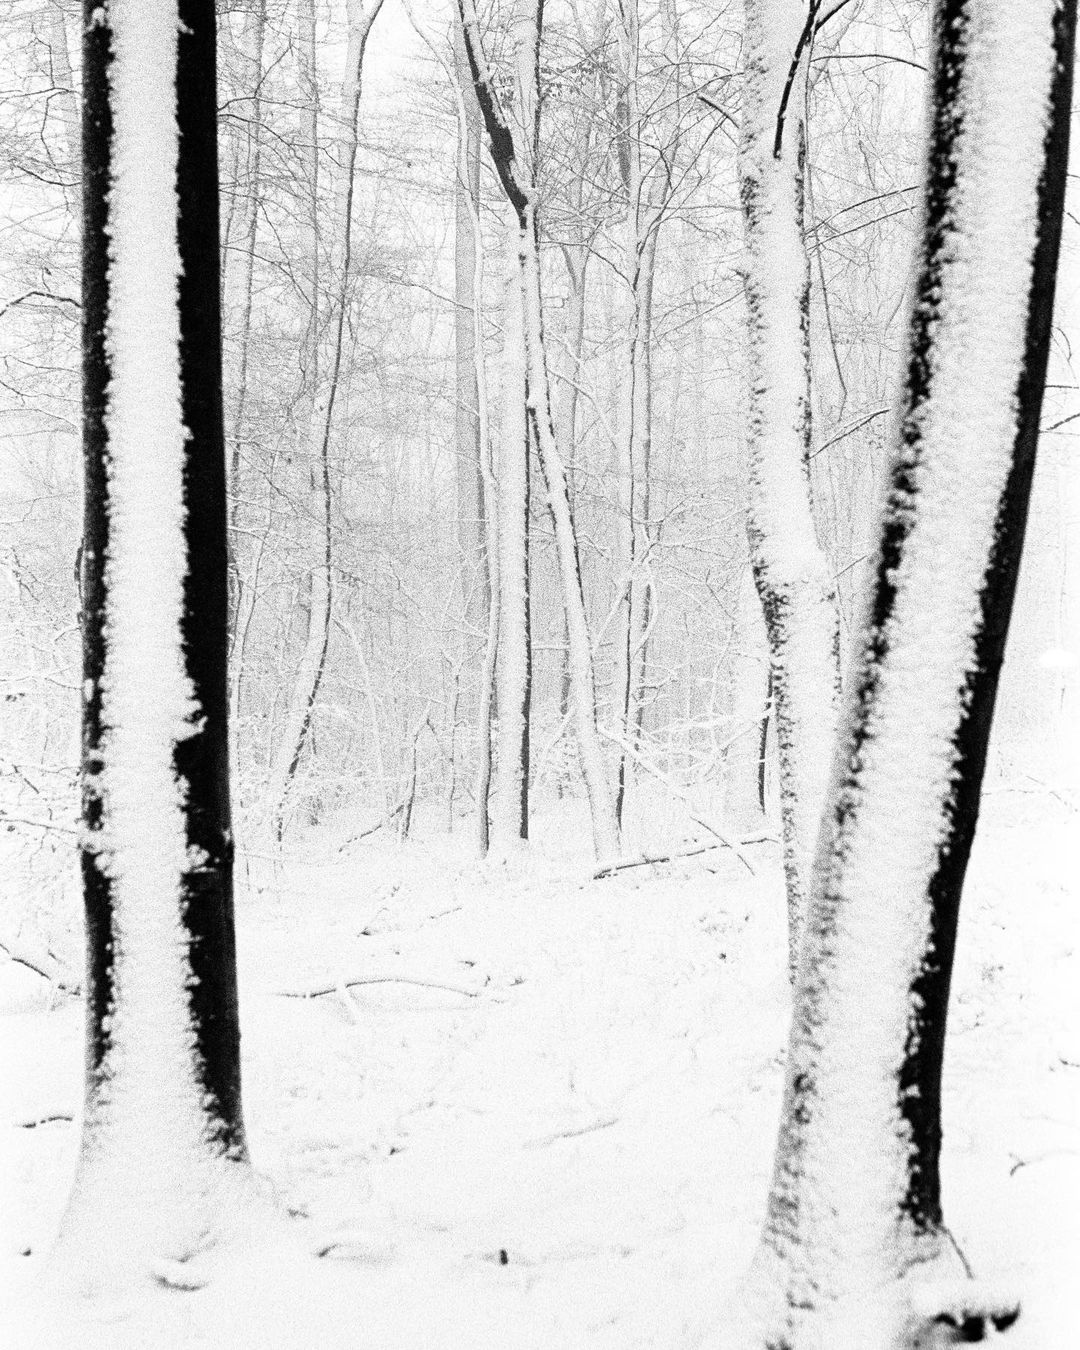 snowy forest caught on 35mm film